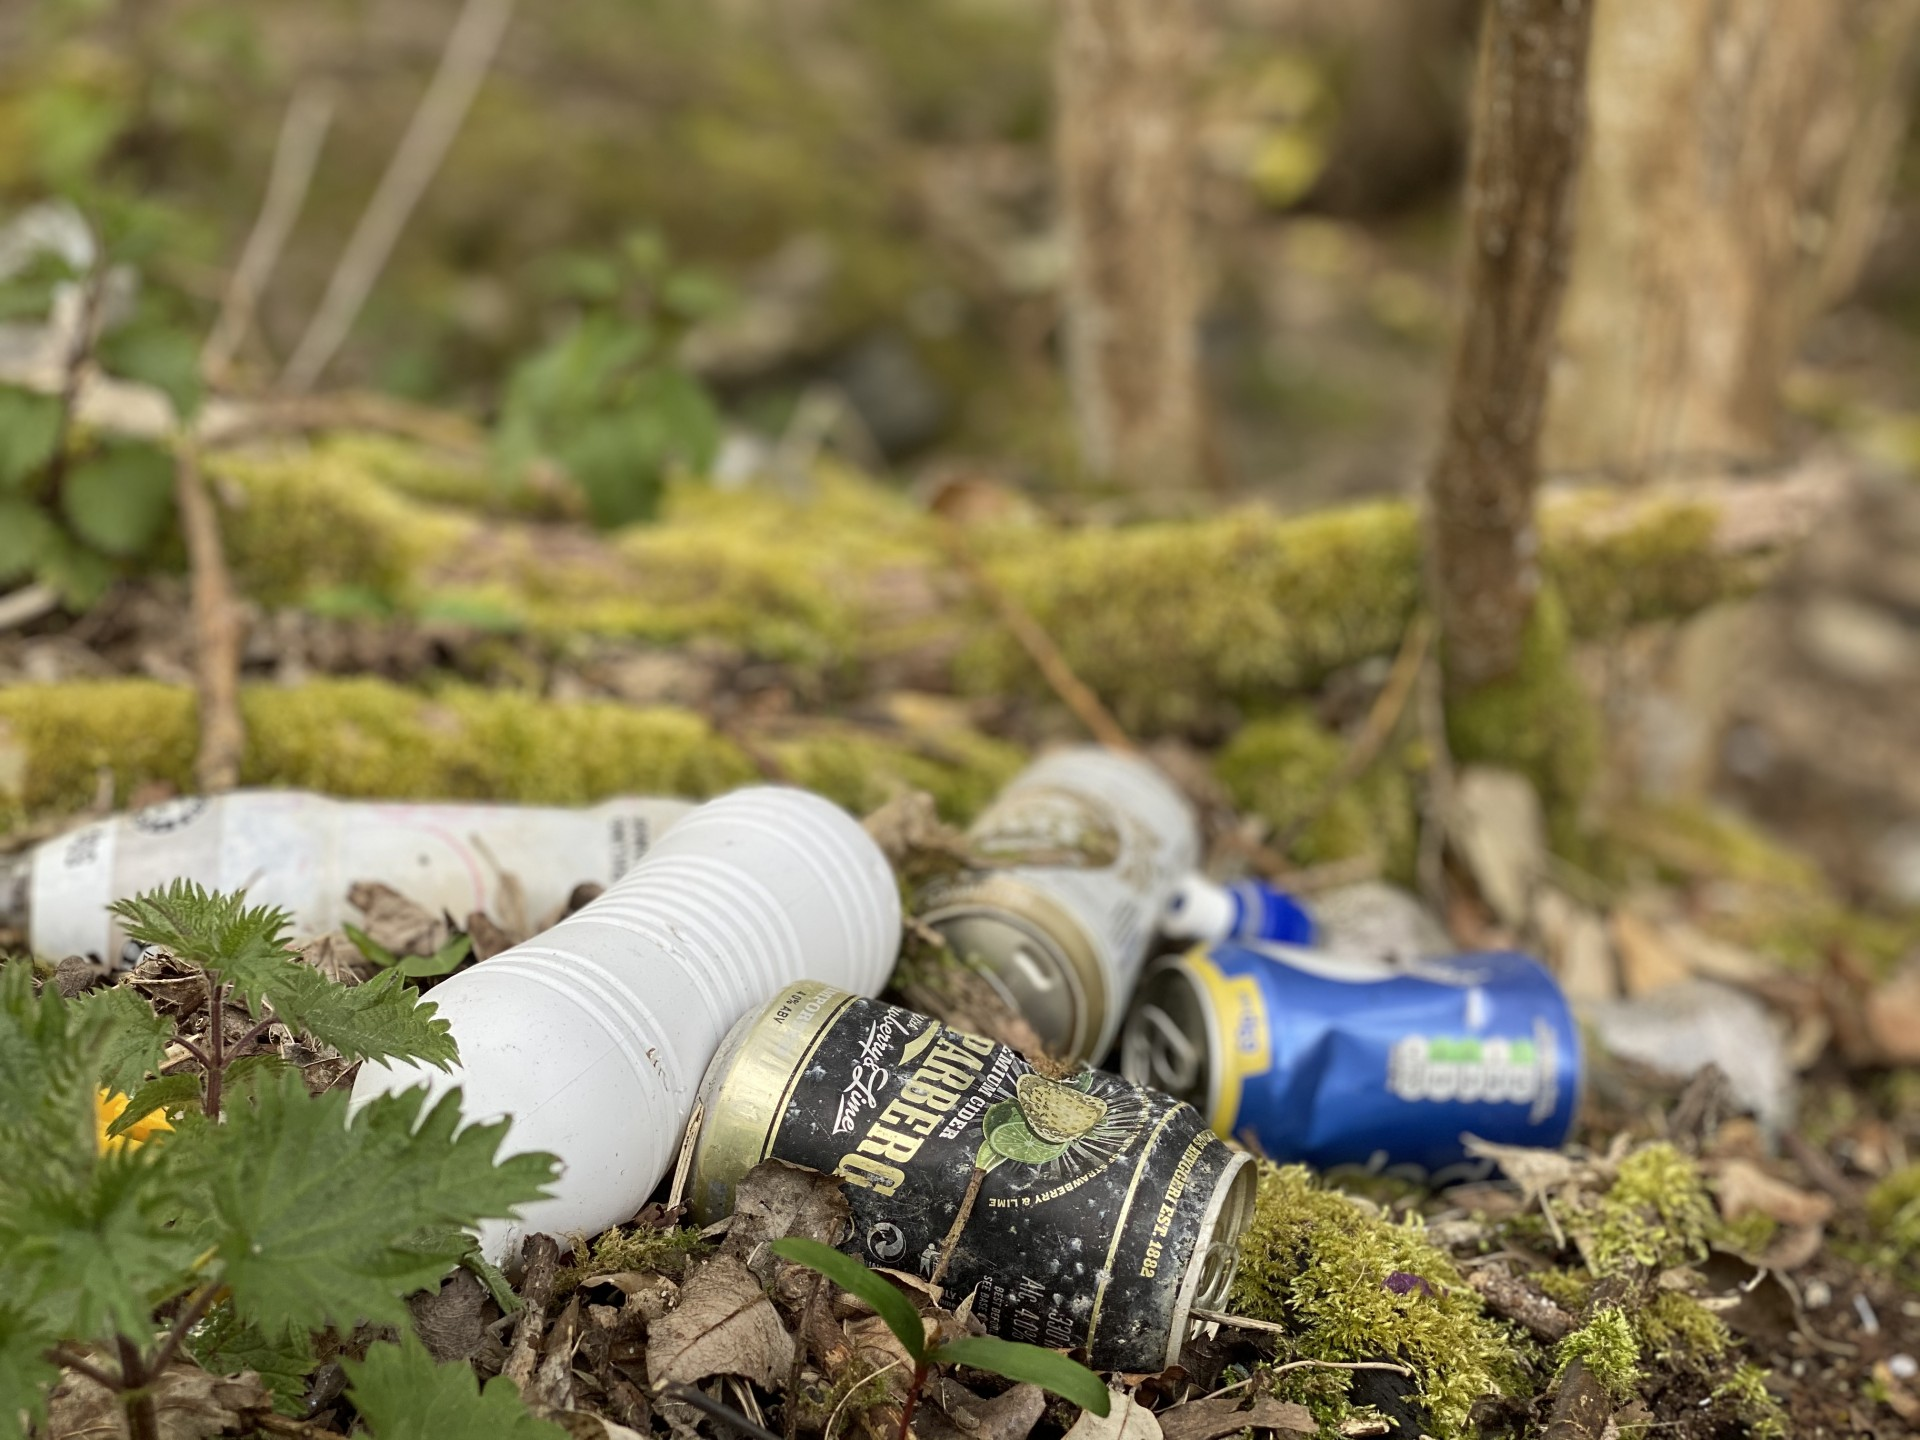 White plastic and tins on a forest floor.